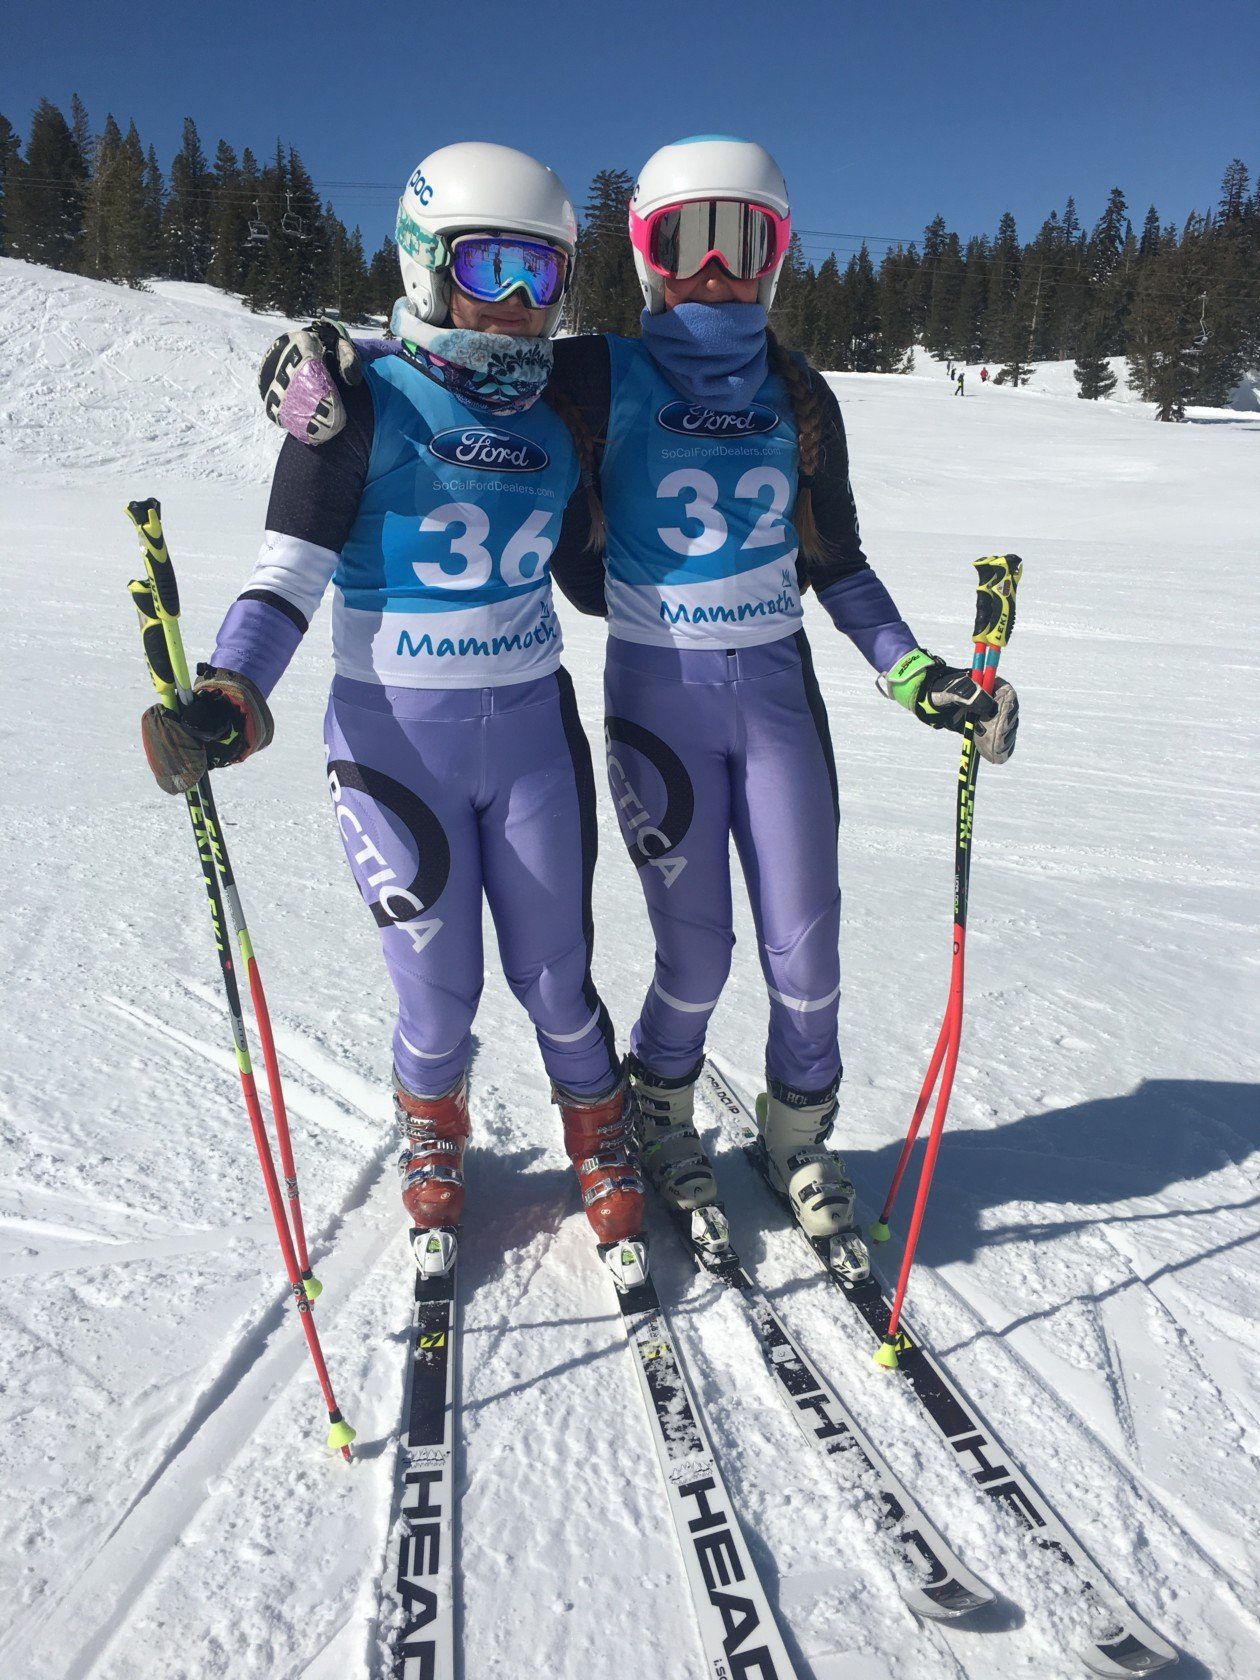 One of our most popular ski racing suits for girls - the Racer GS Speed Suit in Lilac